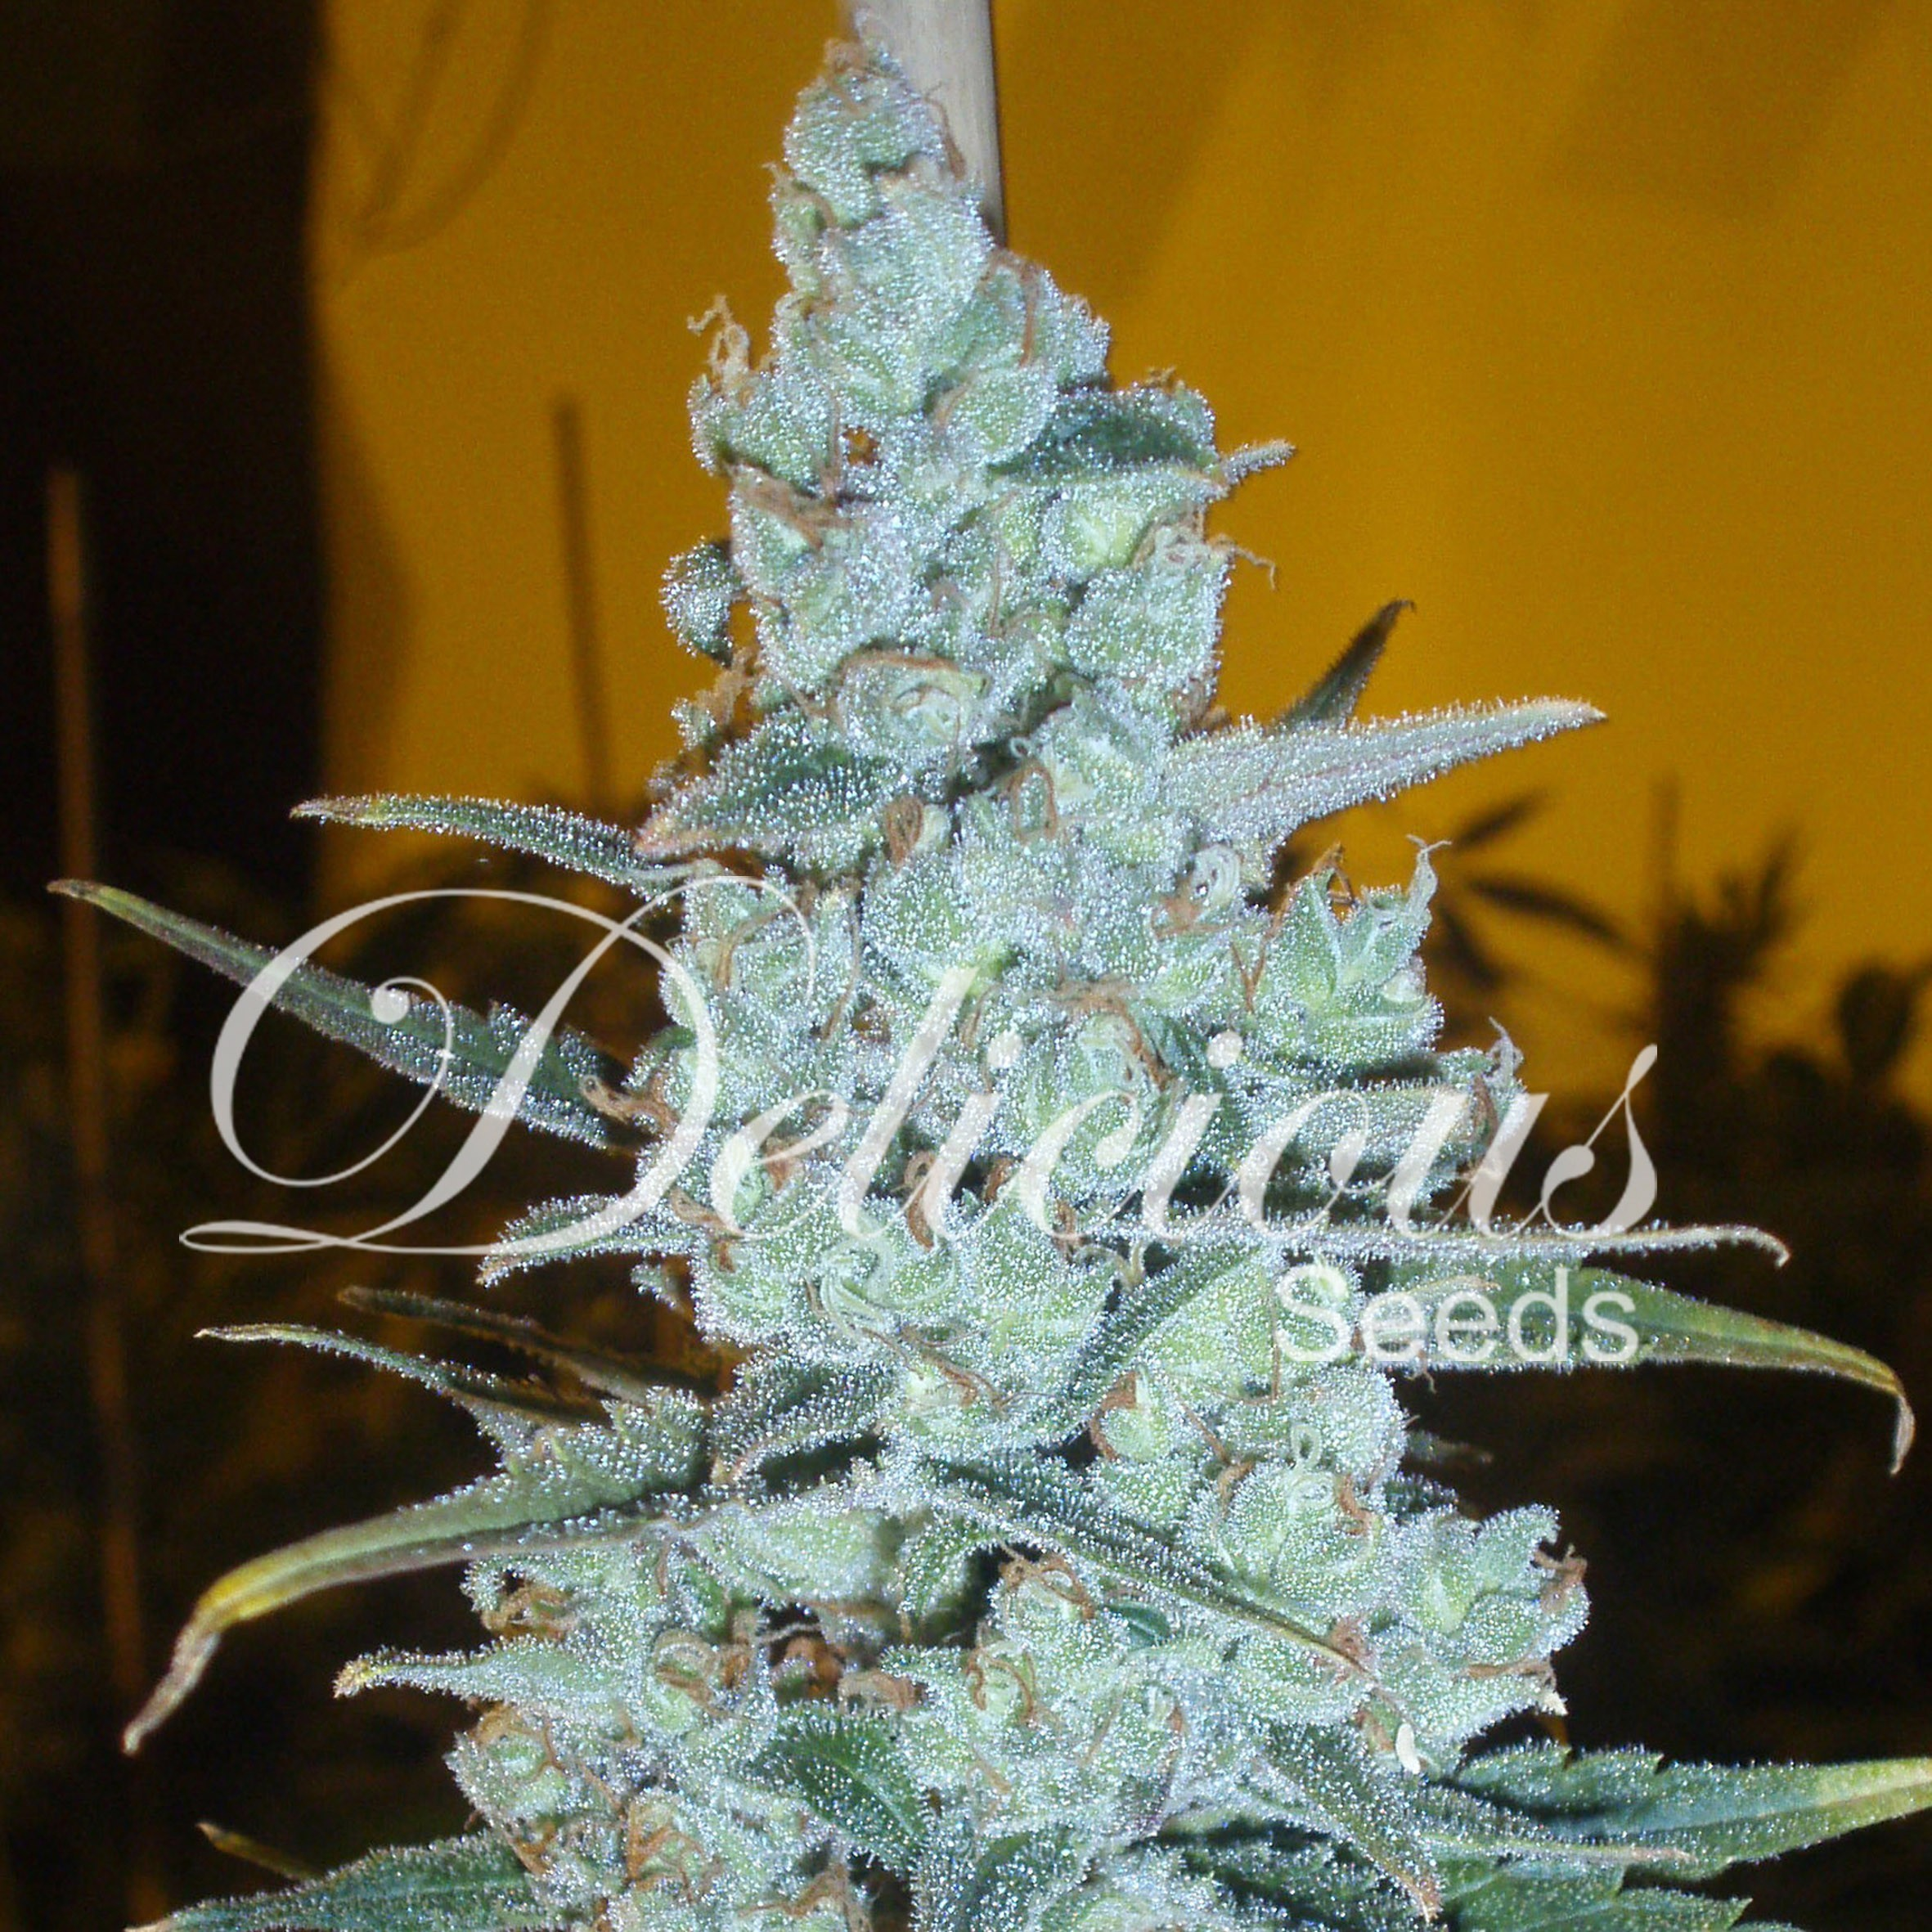 Critical Jack Herer – Delicious Seeds